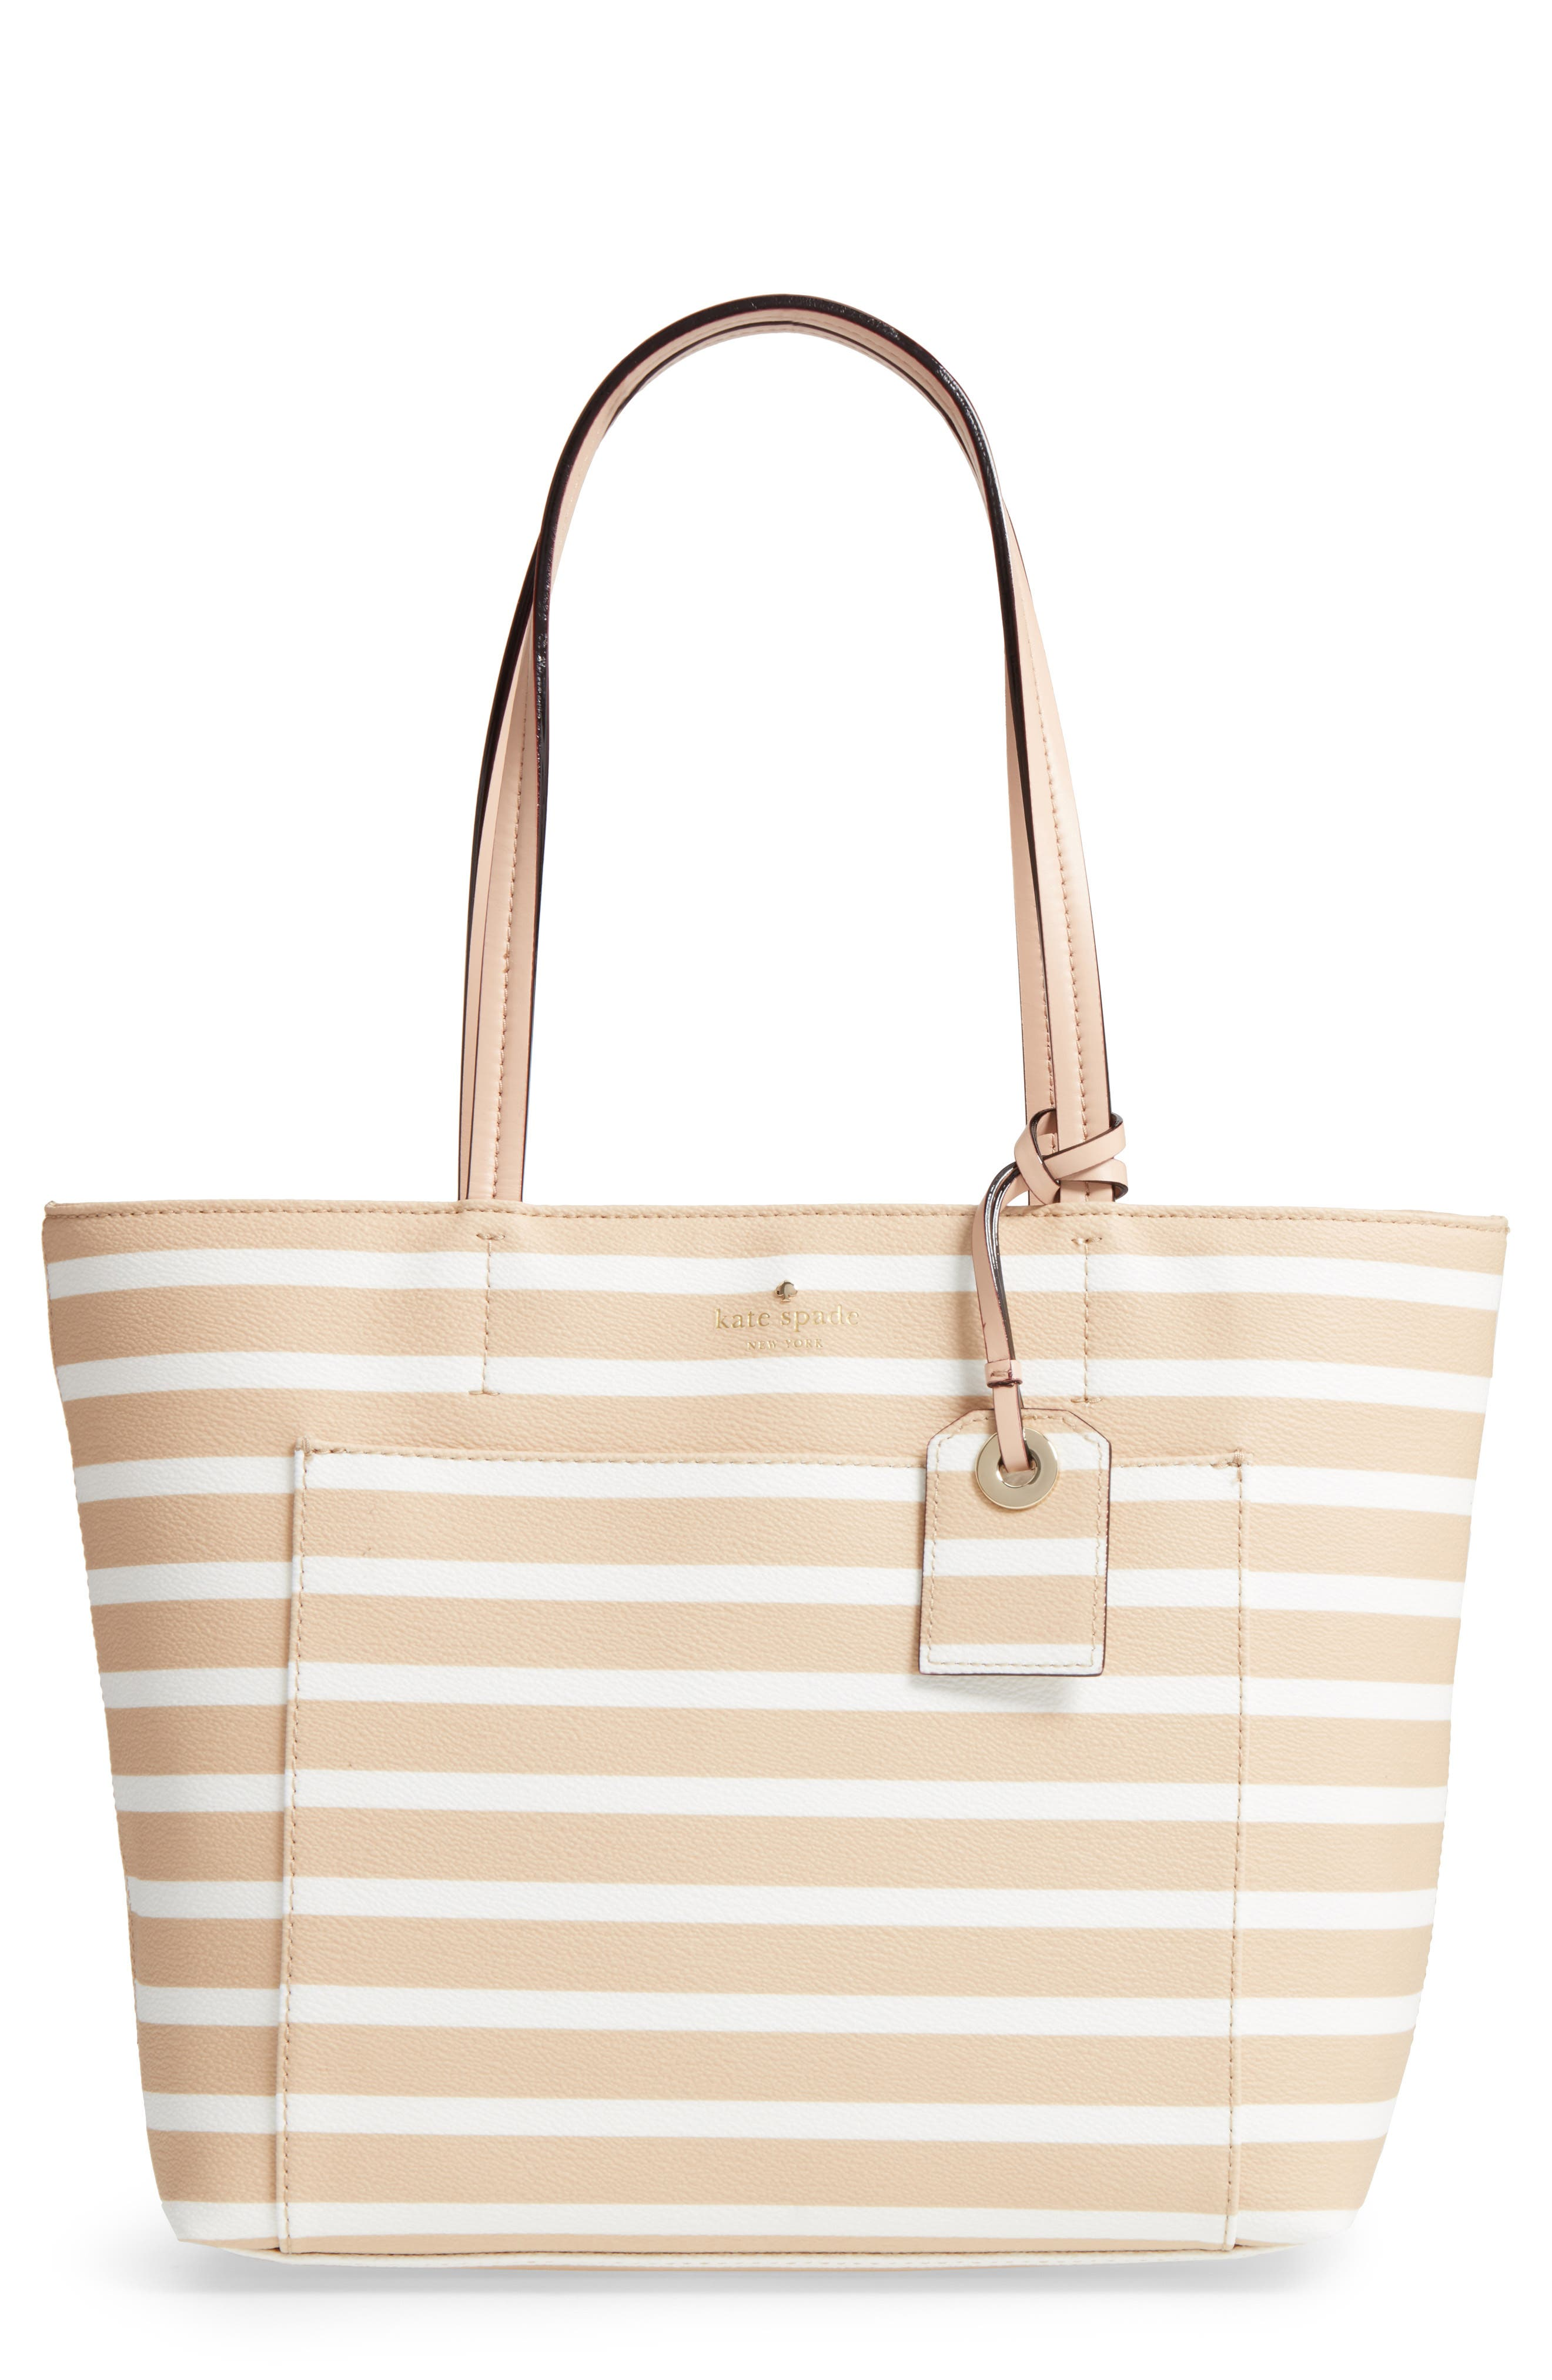 hyde lane - small riley faux leather tote,                             Main thumbnail 1, color,                             Classic Camel/ Cream